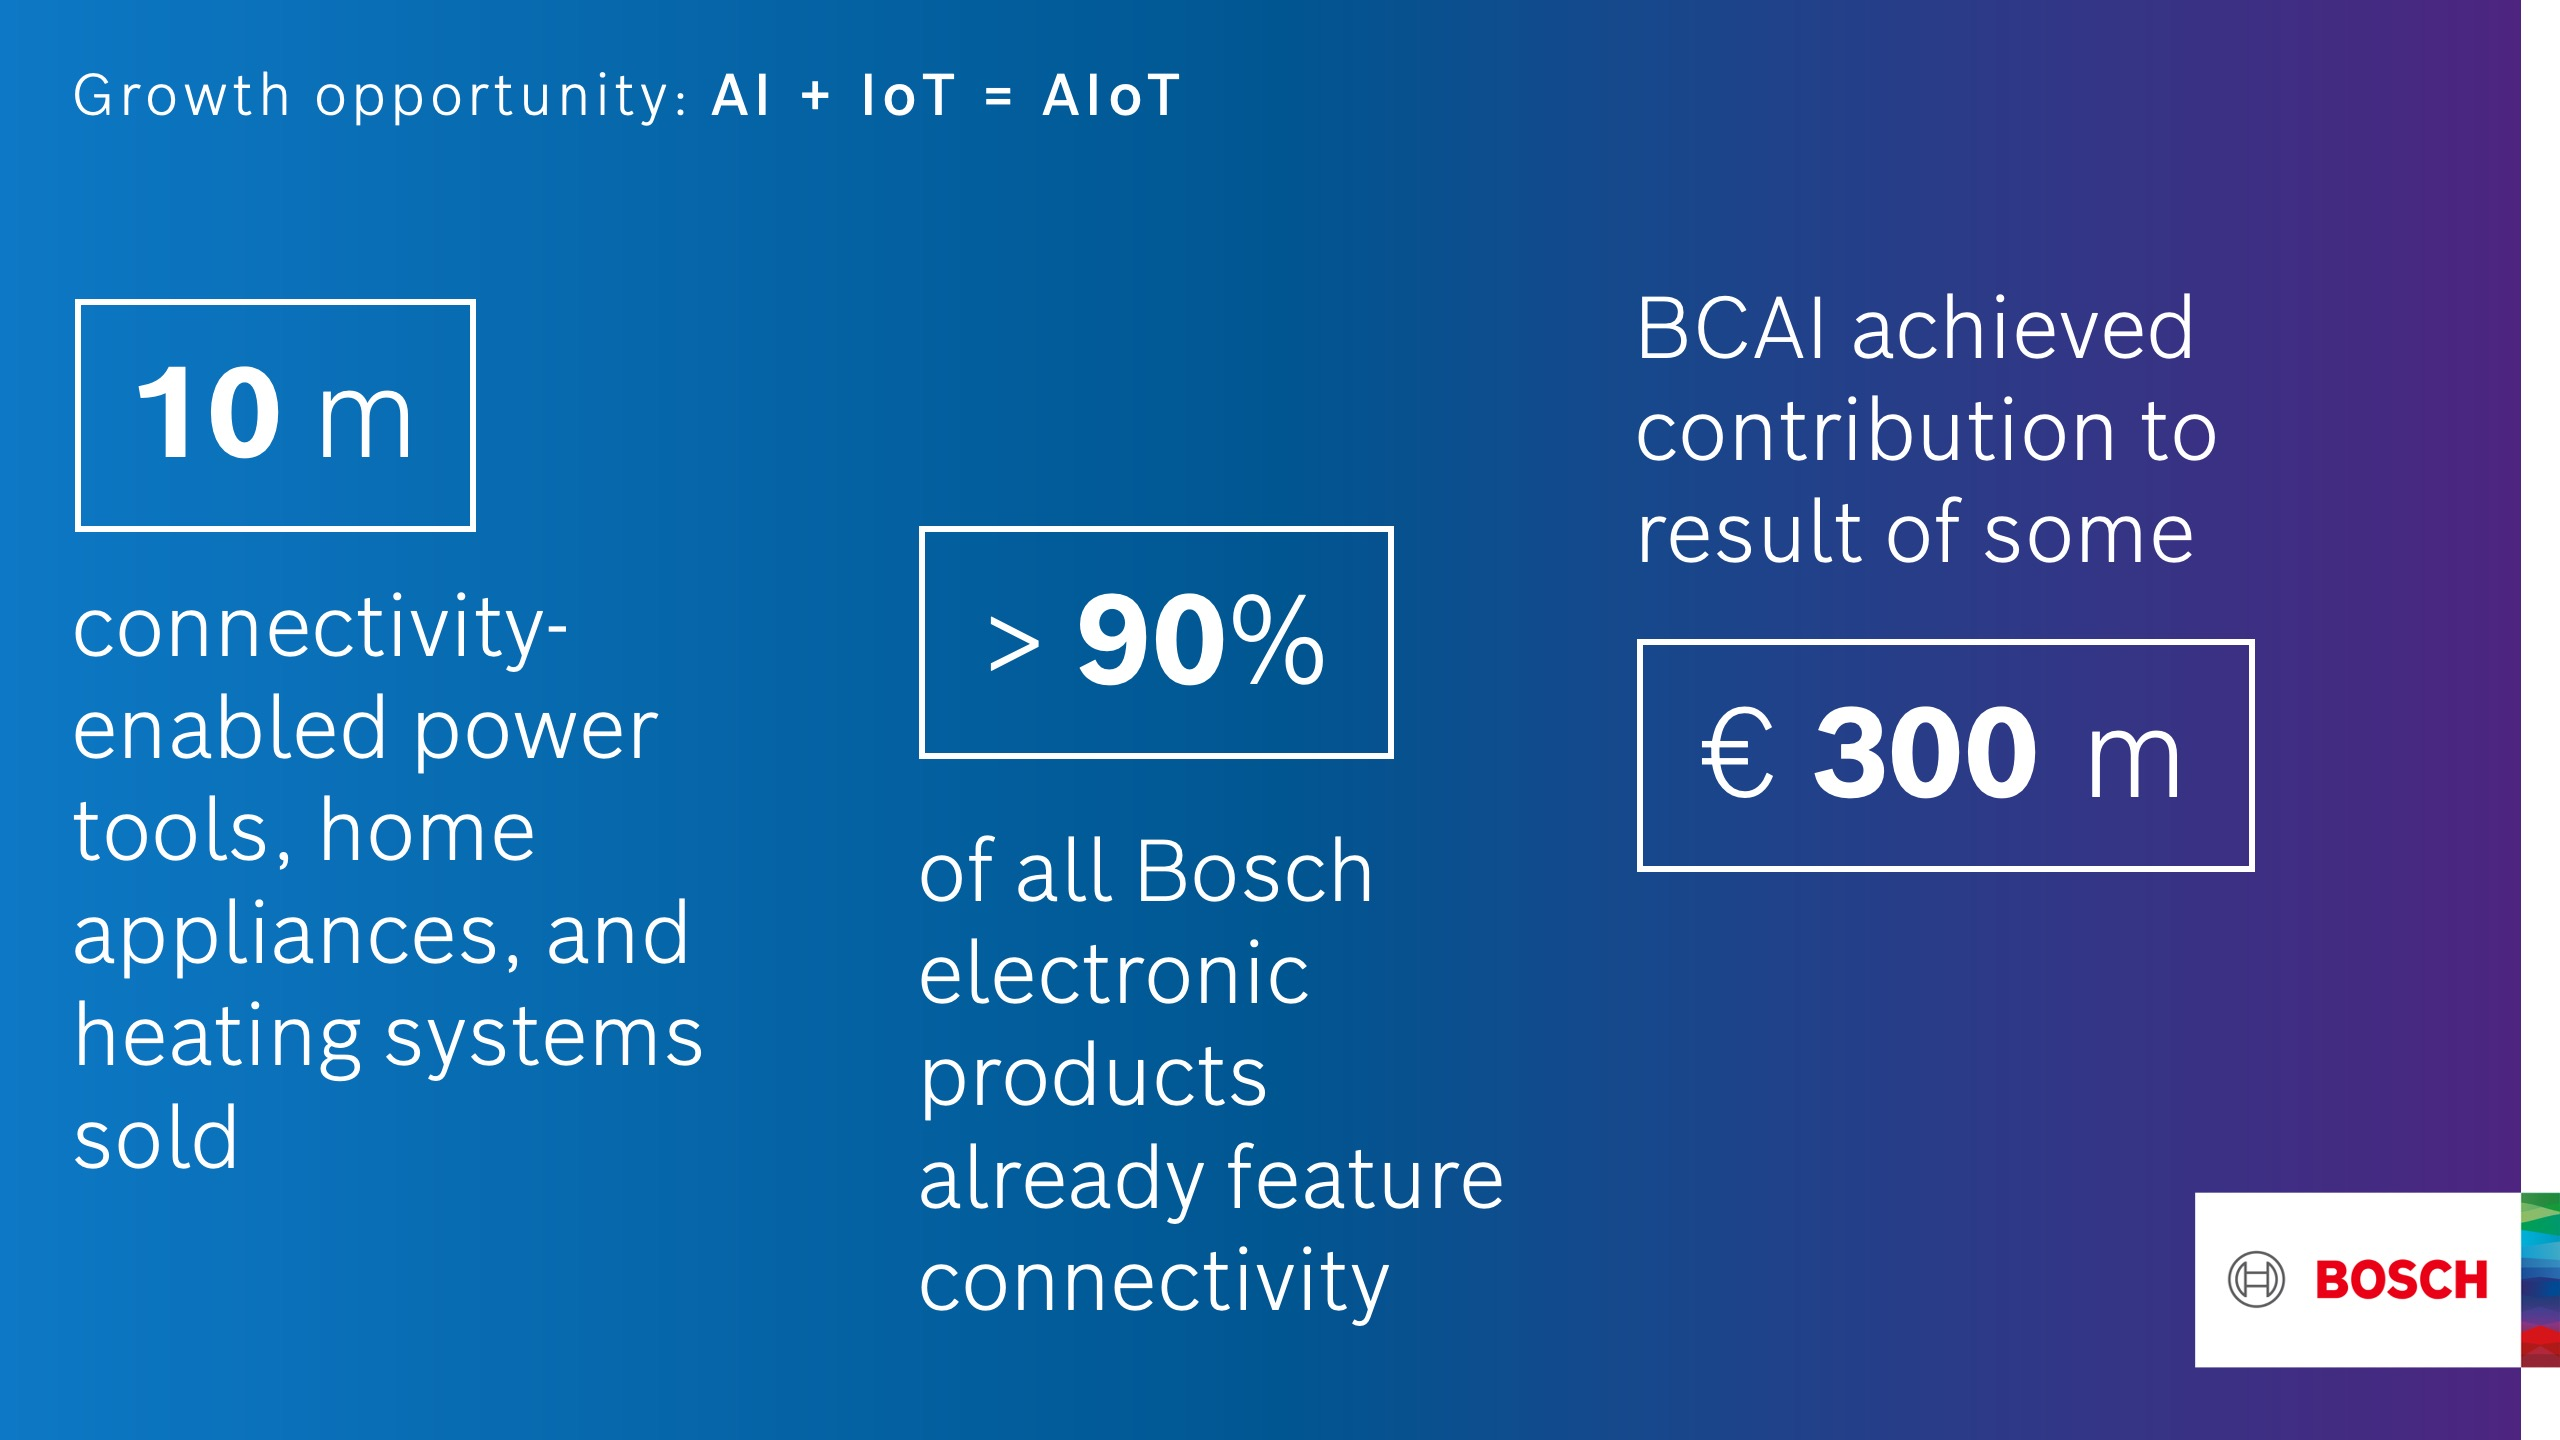 Bosch: growth opportunities in artificial intelligence and the internet of things